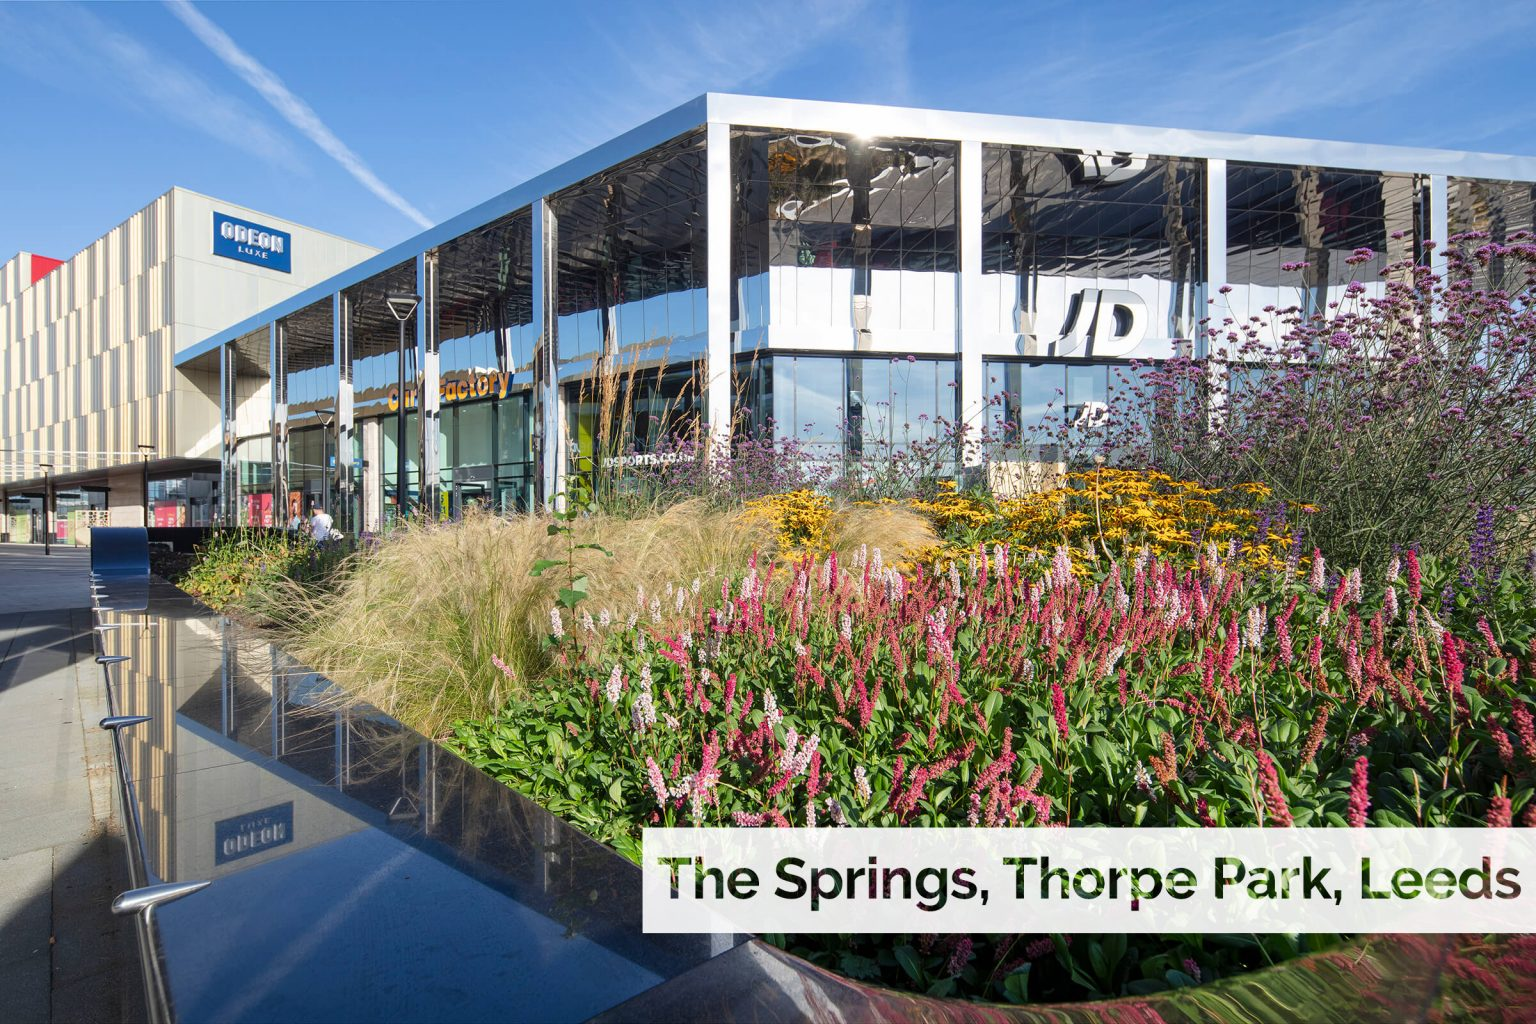 Plant supply to new retail and leisure destination at Thorpe Park, Leeds